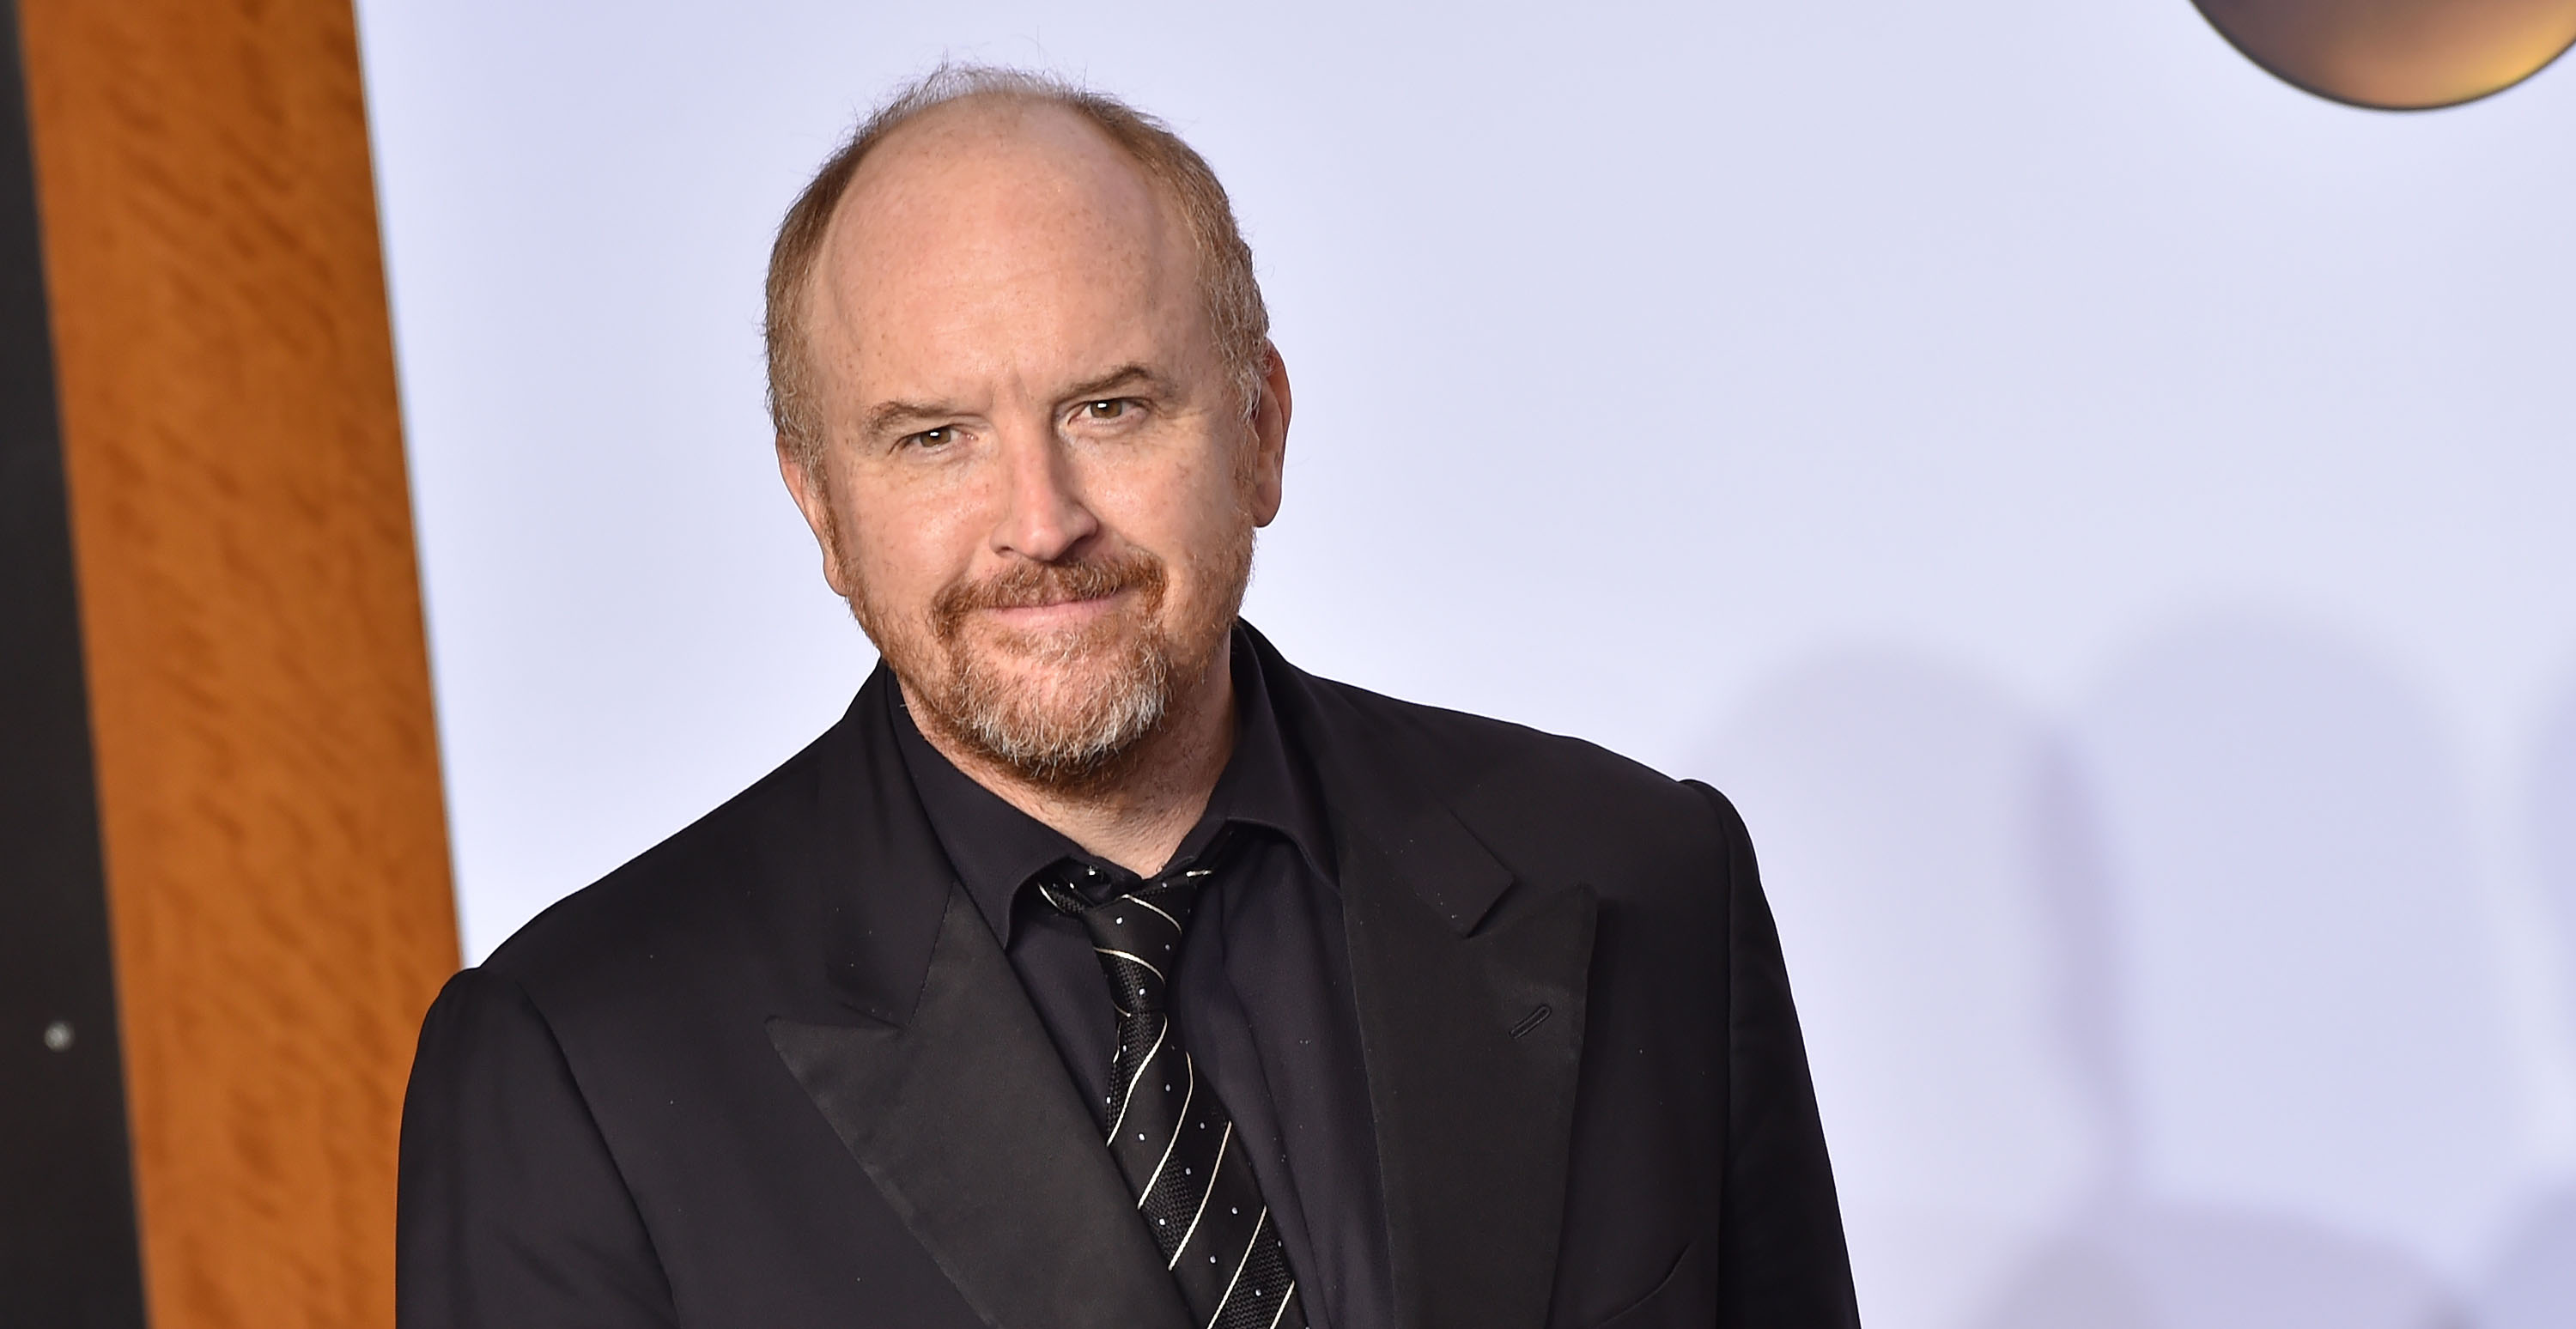 Louis CK before the Oscars on Feb. 28, 2016 in Hollywood.